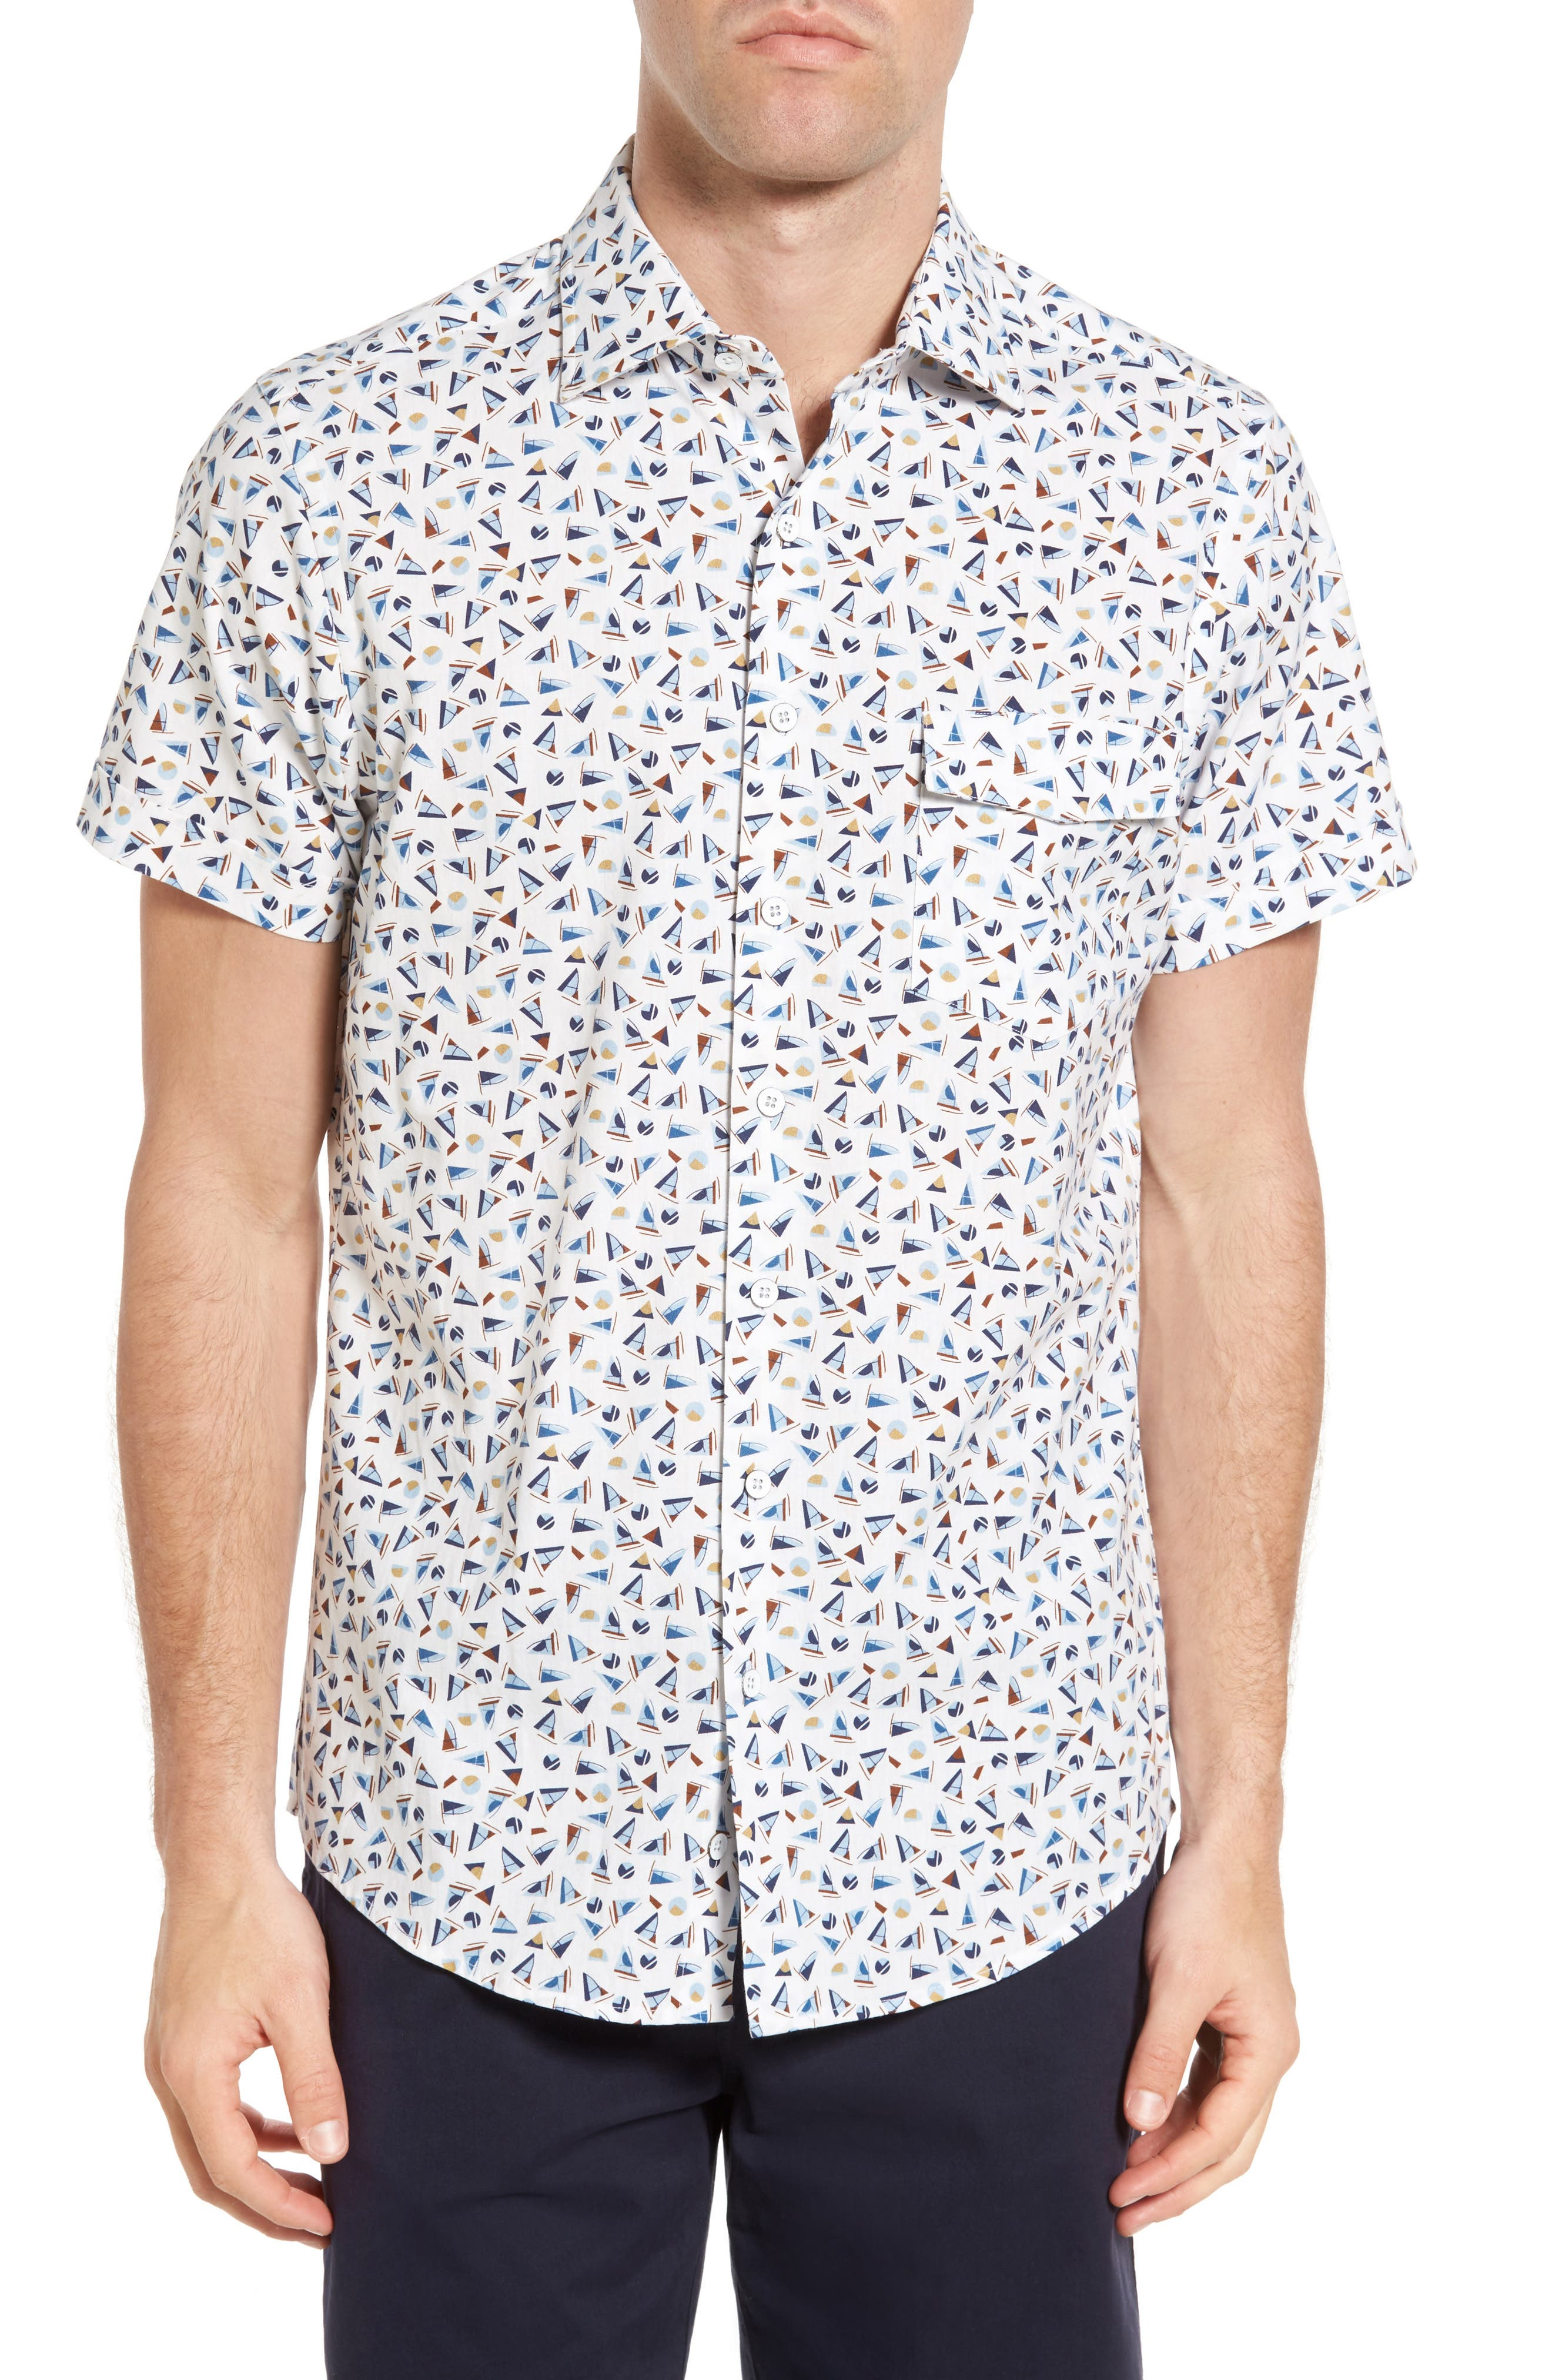 Coal Island Original Fit Print Sport Shirt,                         Main,                         color,